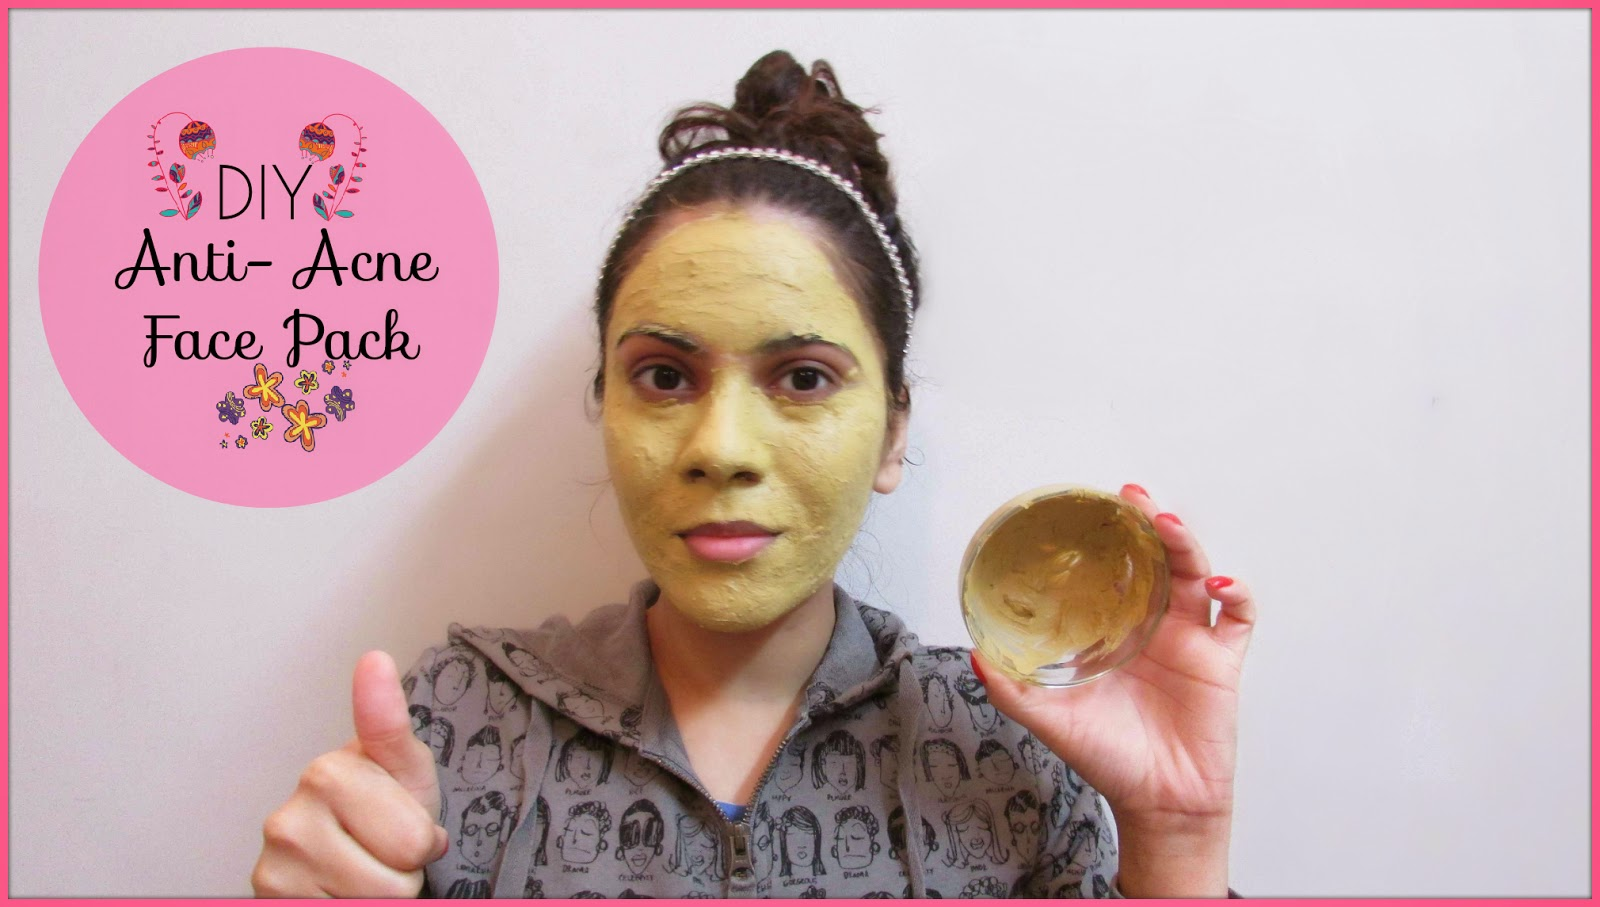 acne, anti acne face pack, asafoetida for skin, face pack for acne, face pack for scars, Fullers earth, Fullers earth face pack for acne, home remedies for acne, home-remedies, how to get rid of acne scars, beauty , fashion,beauty and fashion,beauty blog, fashion blog , indian beauty blog,indian fashion blog, beauty and fashion blog, indian beauty and fashion blog, indian bloggers, indian beauty bloggers, indian fashion bloggers,indian bloggers online, top 10 indian bloggers, top indian bloggers,top 10 fashion bloggers, indian bloggers on blogspot,home remedies, how to